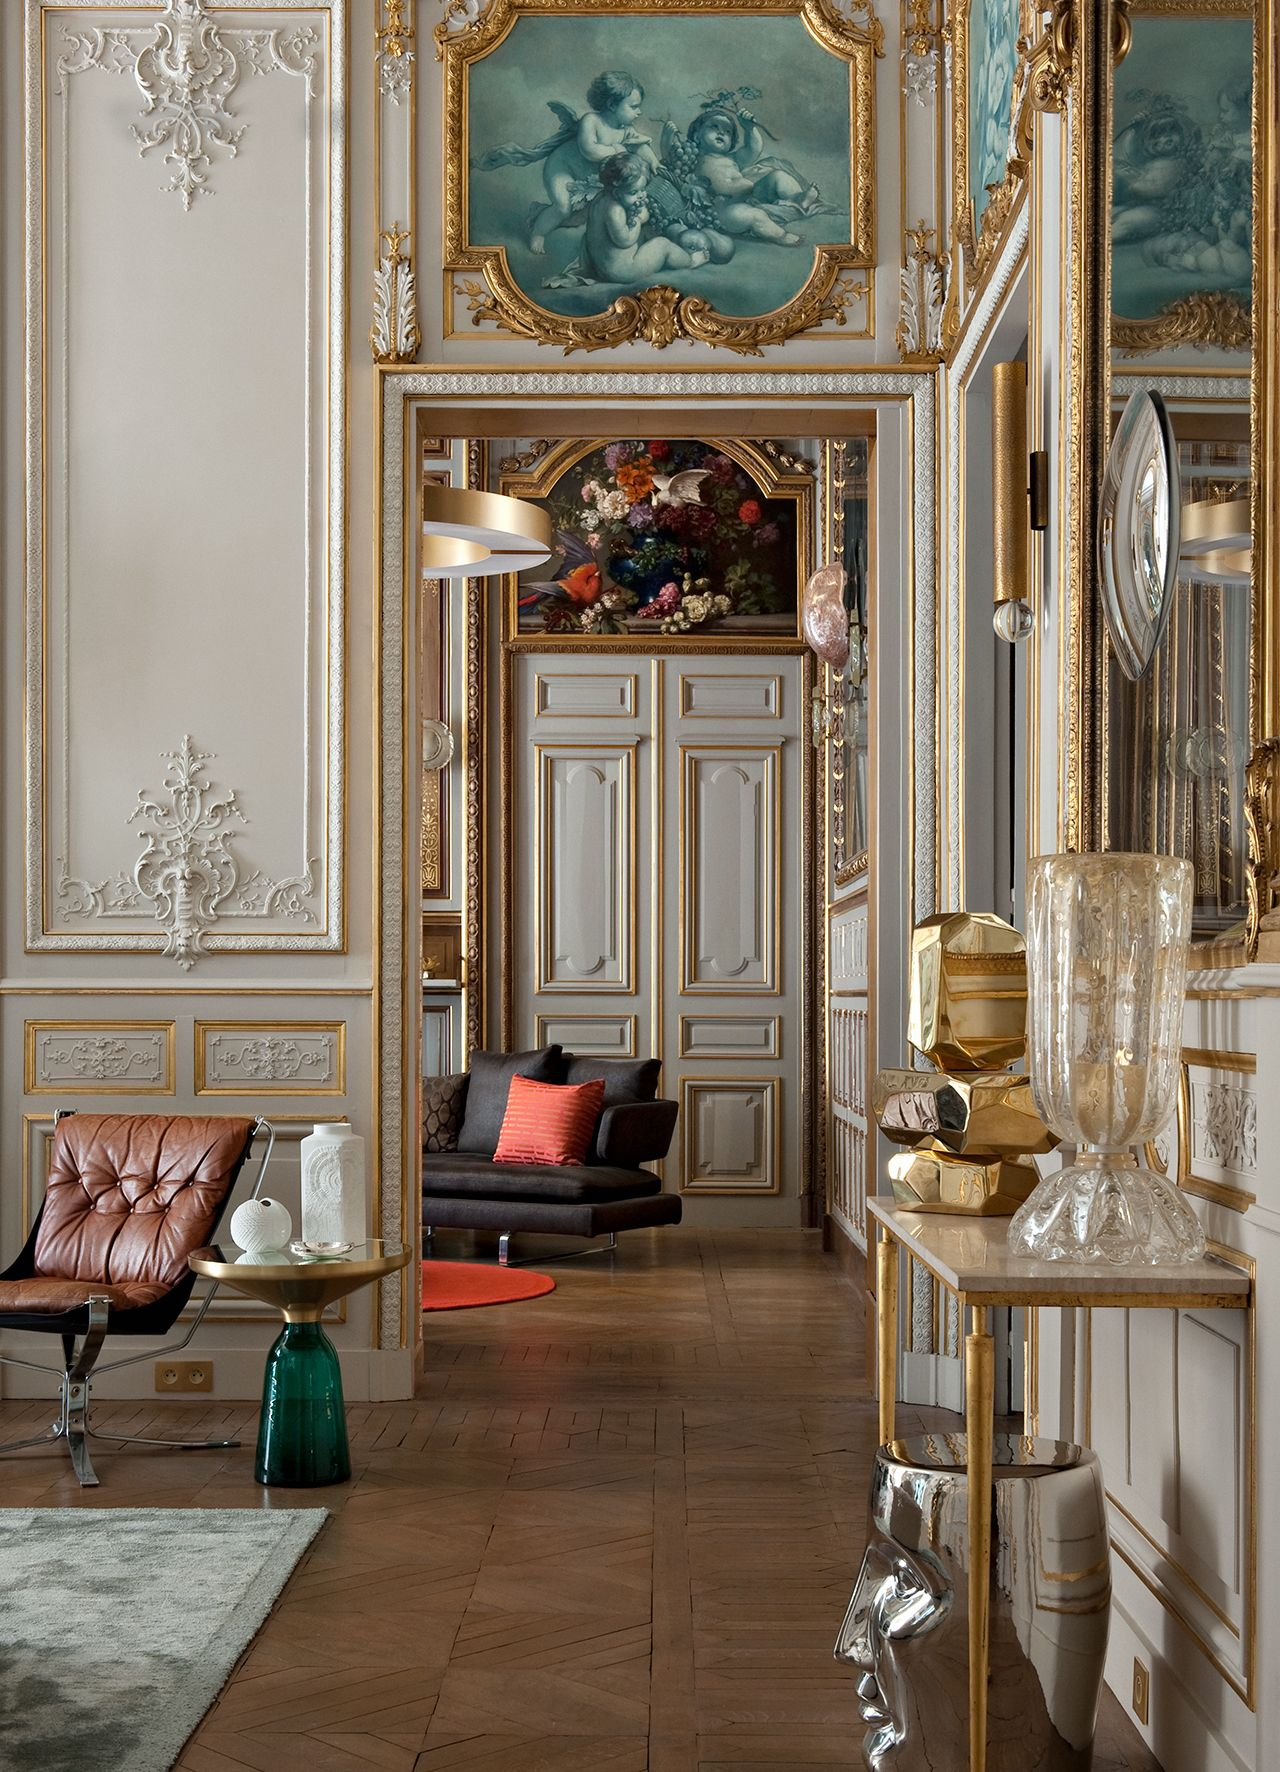 Boutique makeover paris france interior design by klavs rosenfalck photography nicolas also  kaleidoscope of uncompromising ideas gestalten rh pinterest